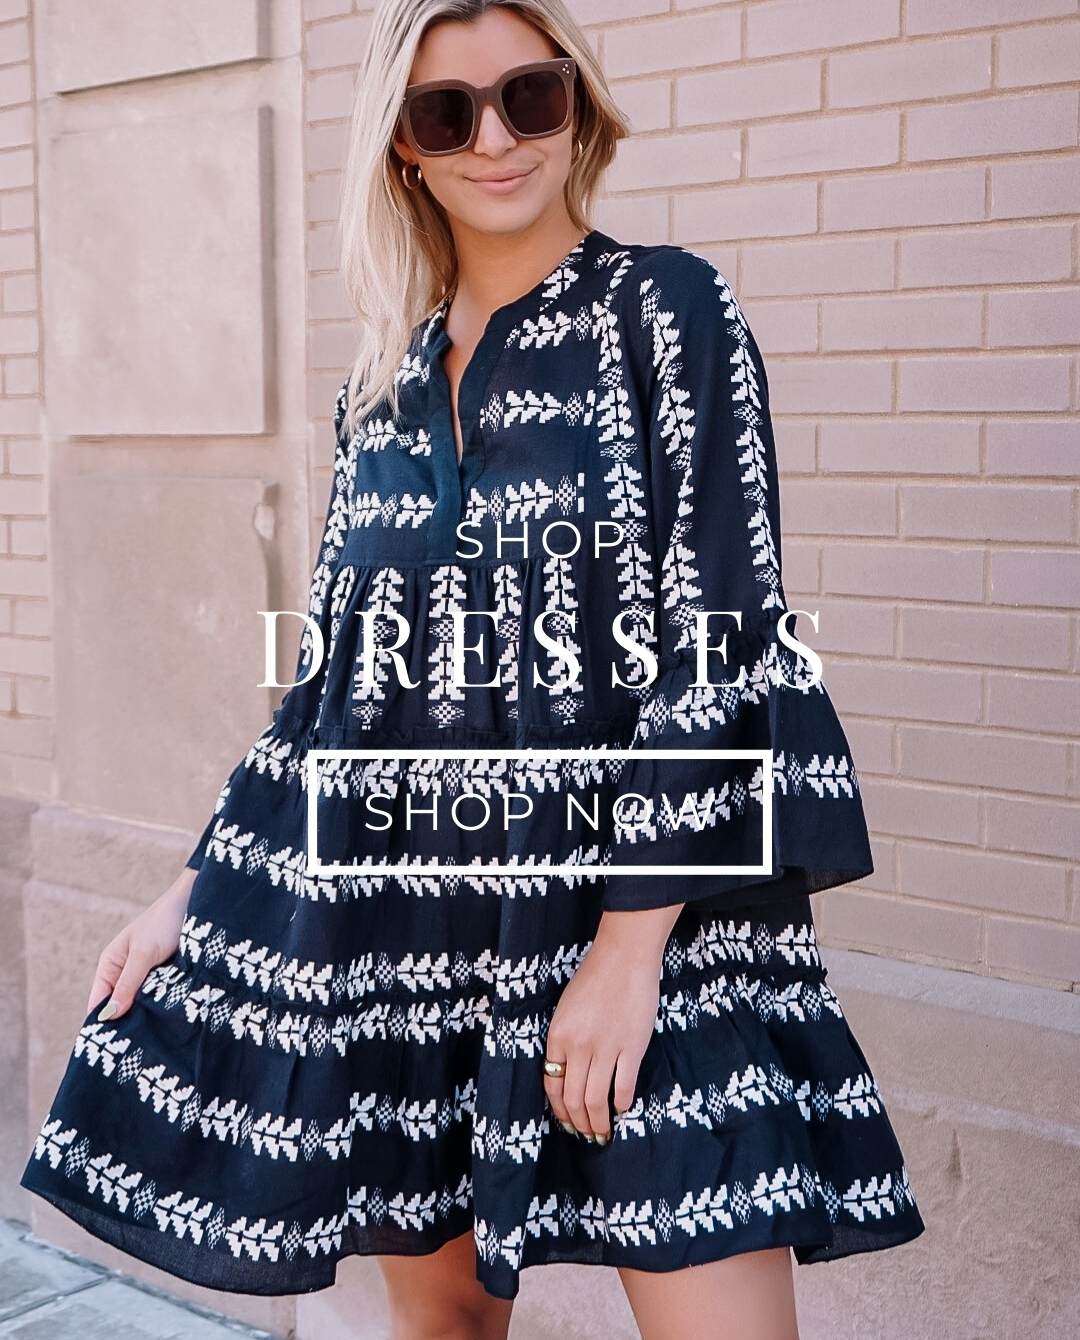 Shop trendy boutique dresses, midi dresses, maxi dresses, cocktail dresses, casual dresses, sun dresses, spring dresses